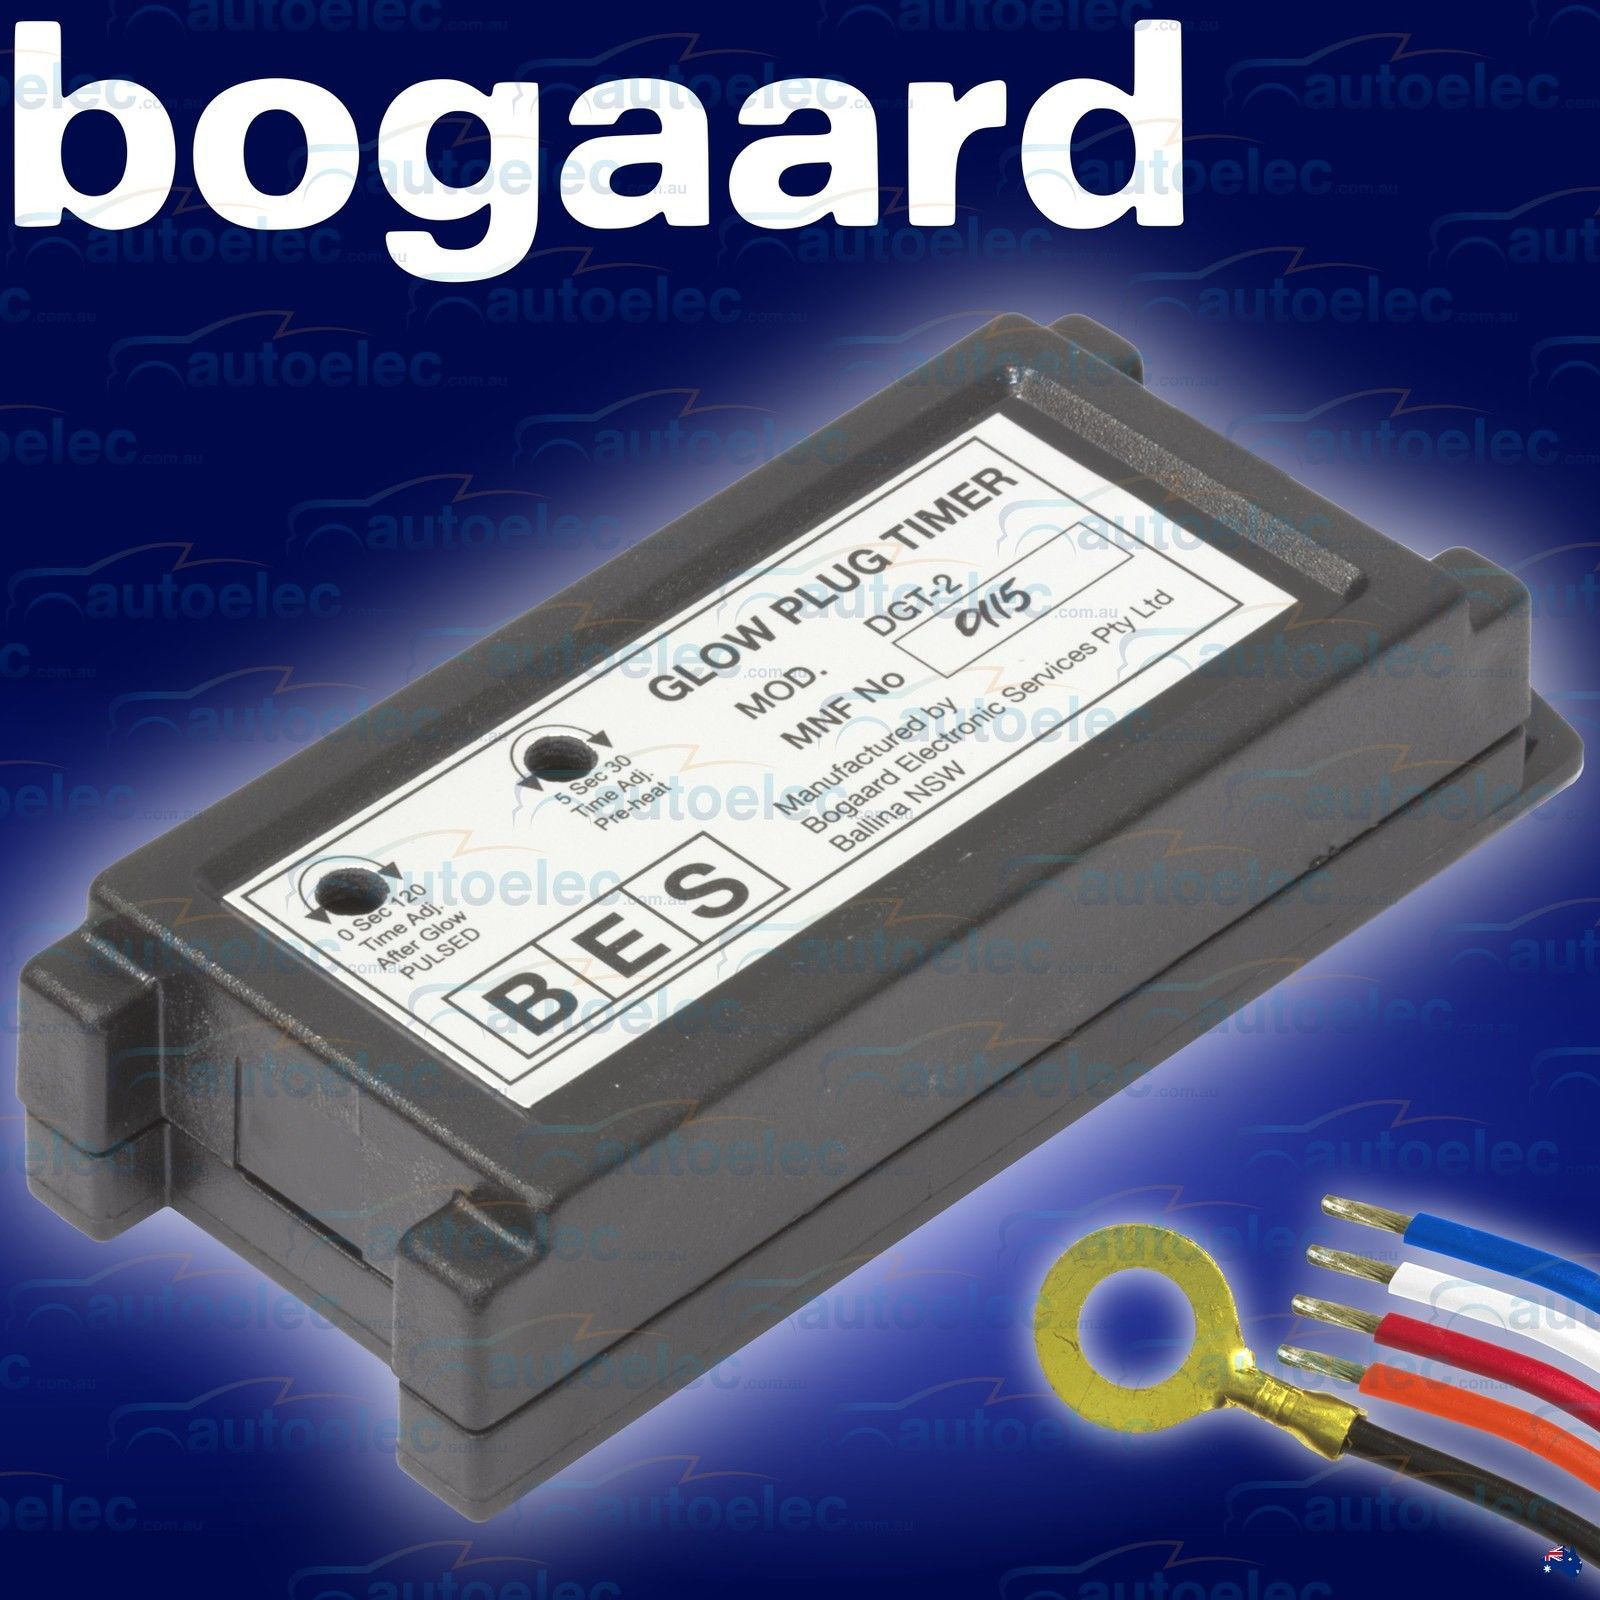 bogaard turbo timer wiring diagram mitsubishi lancer pdf glow plug engine for car 4x4 truck boat 12v